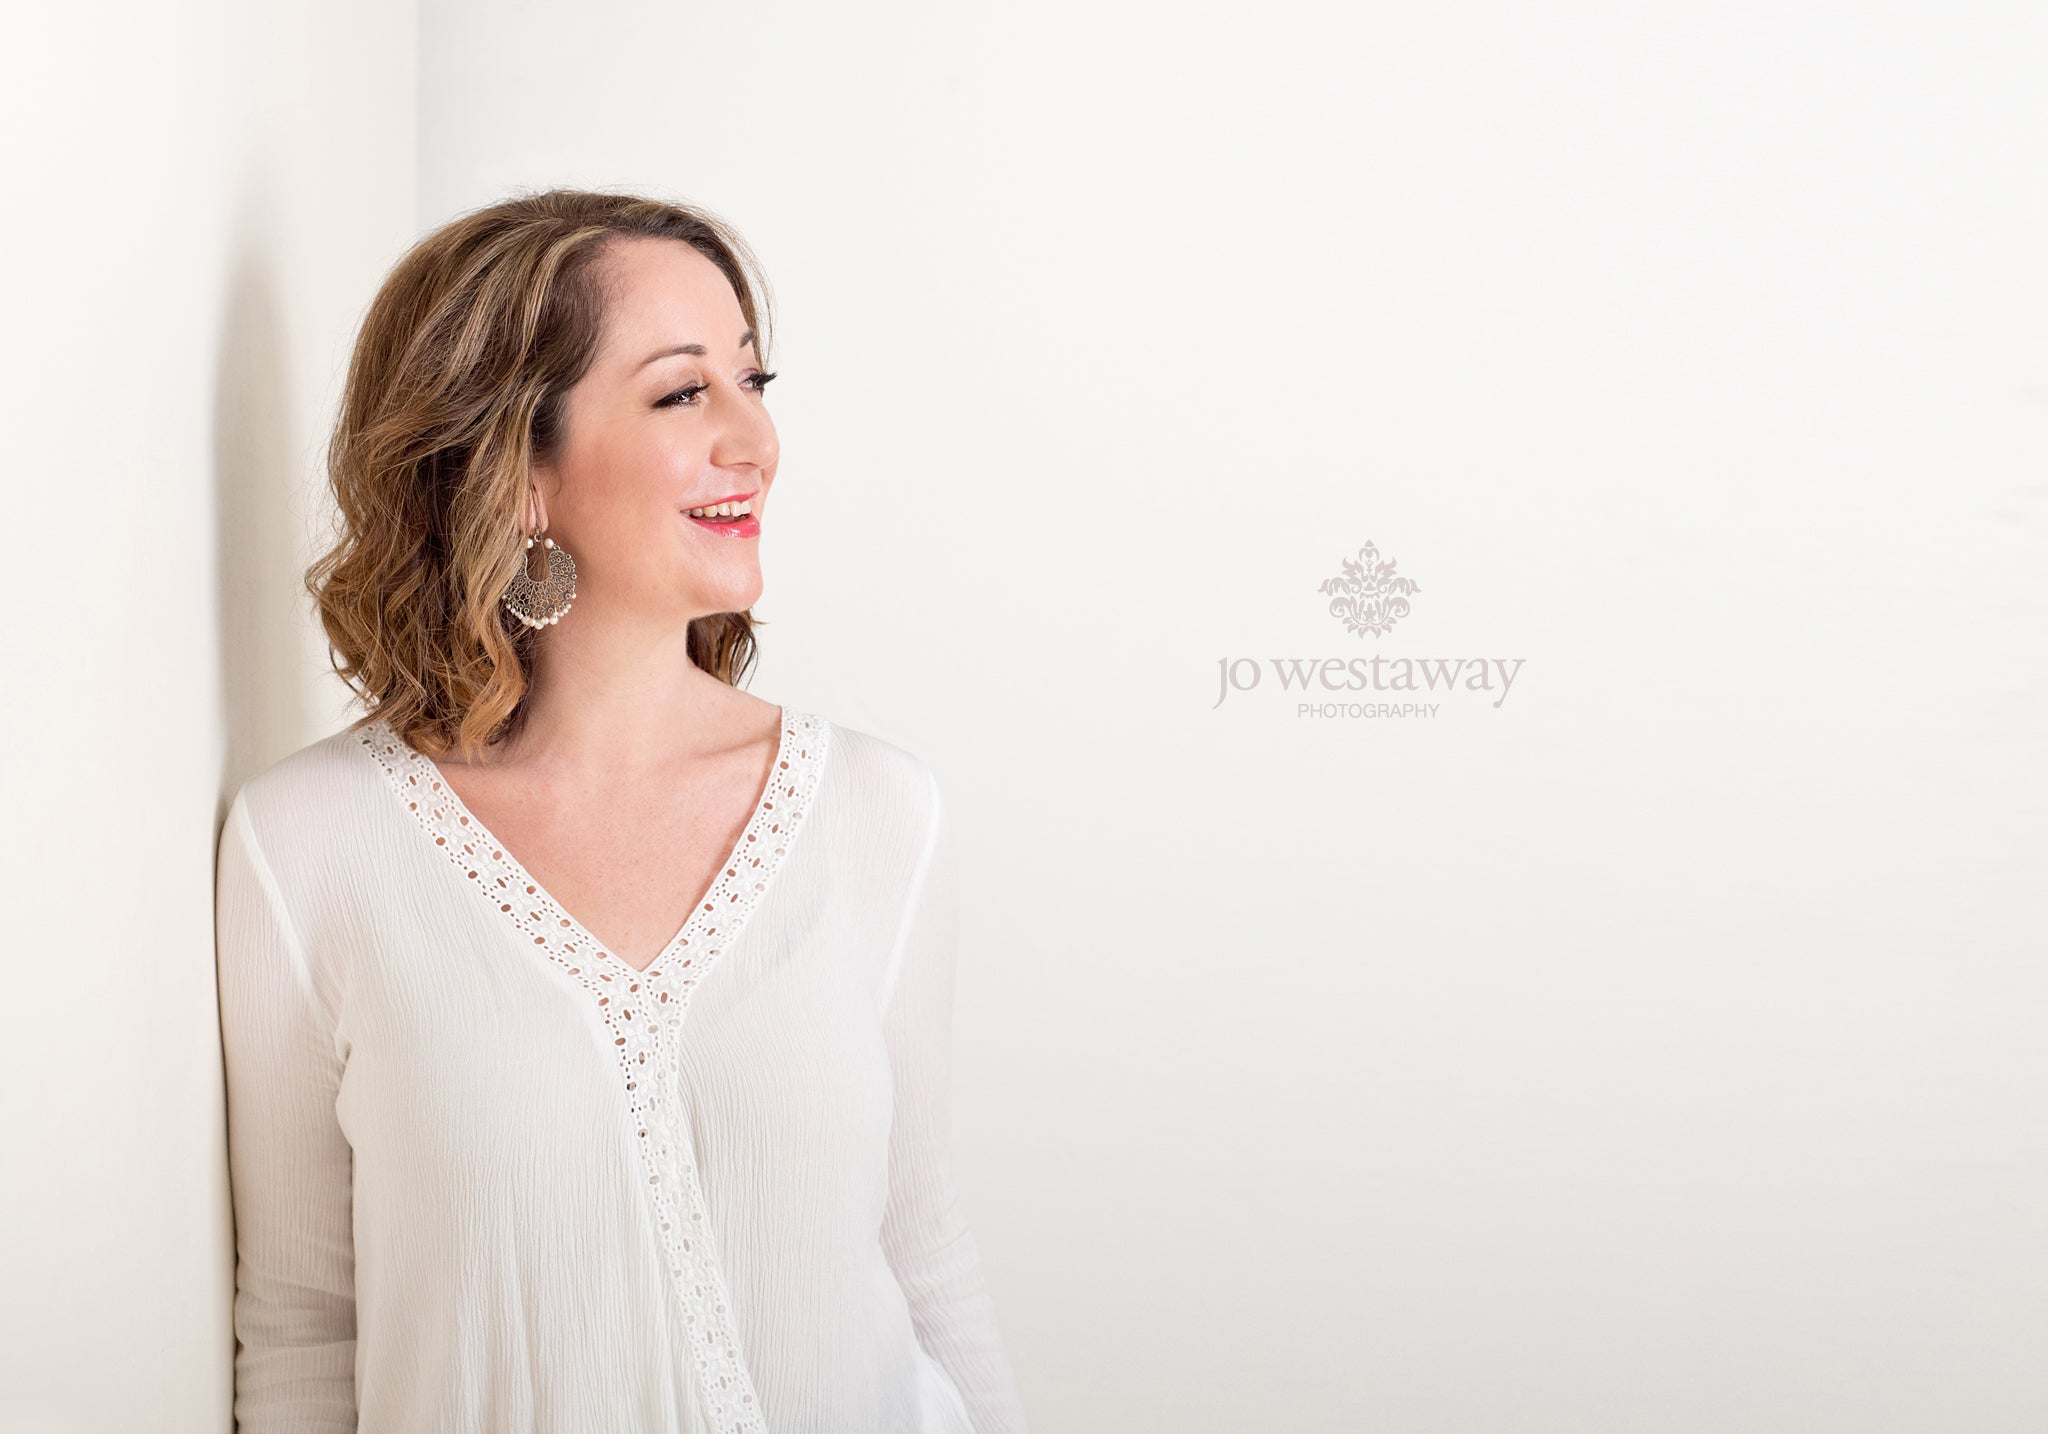 Show your true personality and style through authentic personal brand business portraits and modern headshots